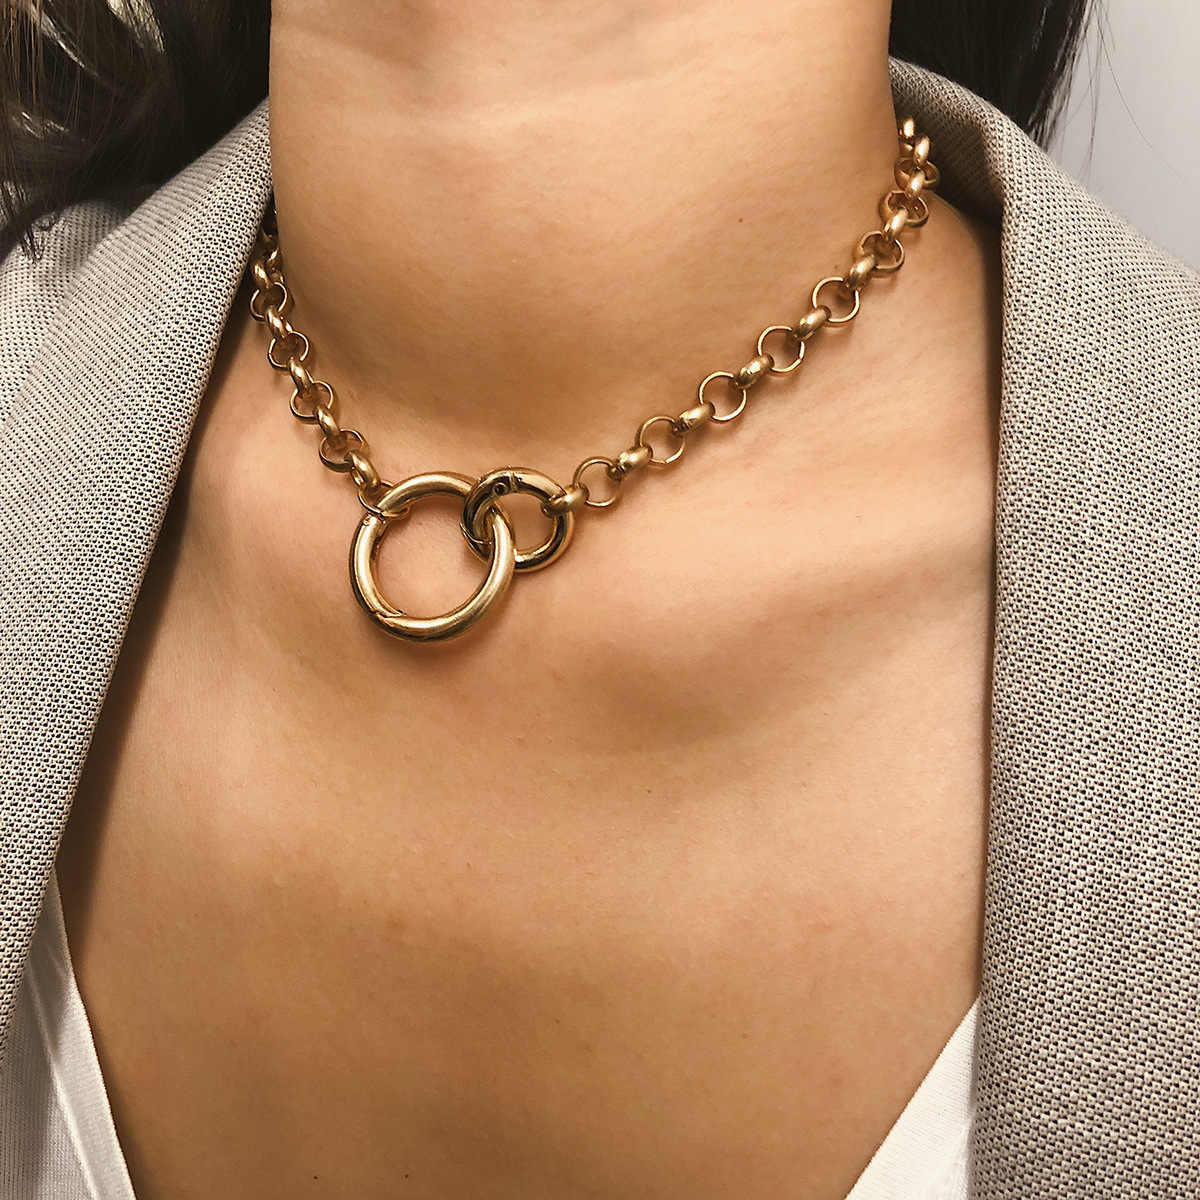 Punk Circle Choker Necklace Hip Hop Jewelry 2019 Fashion Statement Thick Chain Necklace Collier Ras Du Cou